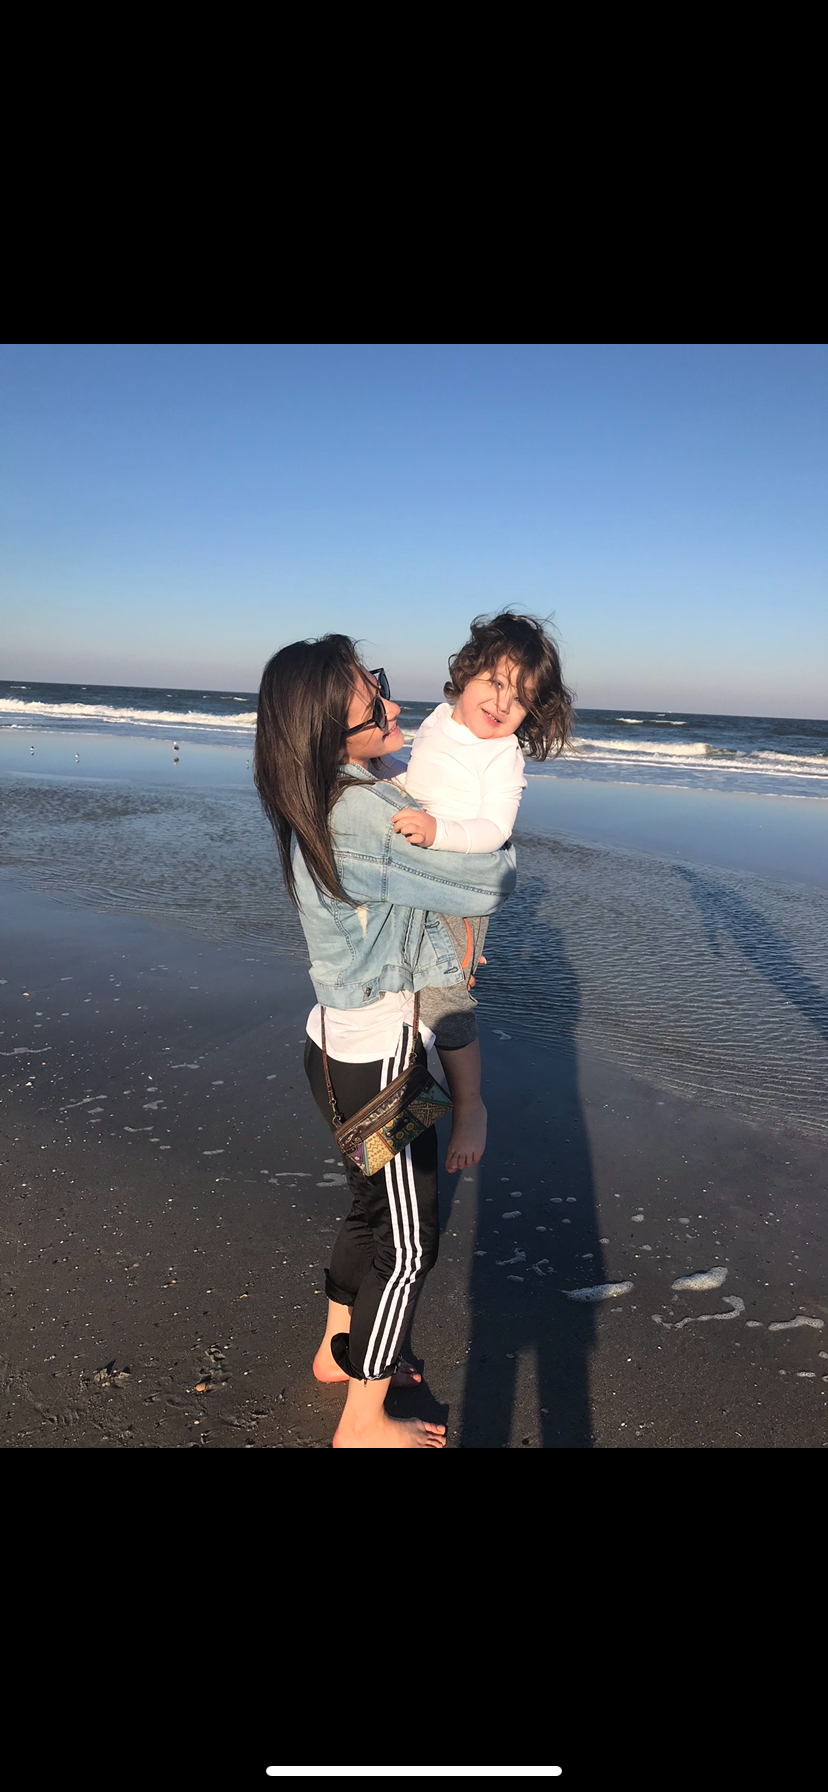 Francesca and son at the beach